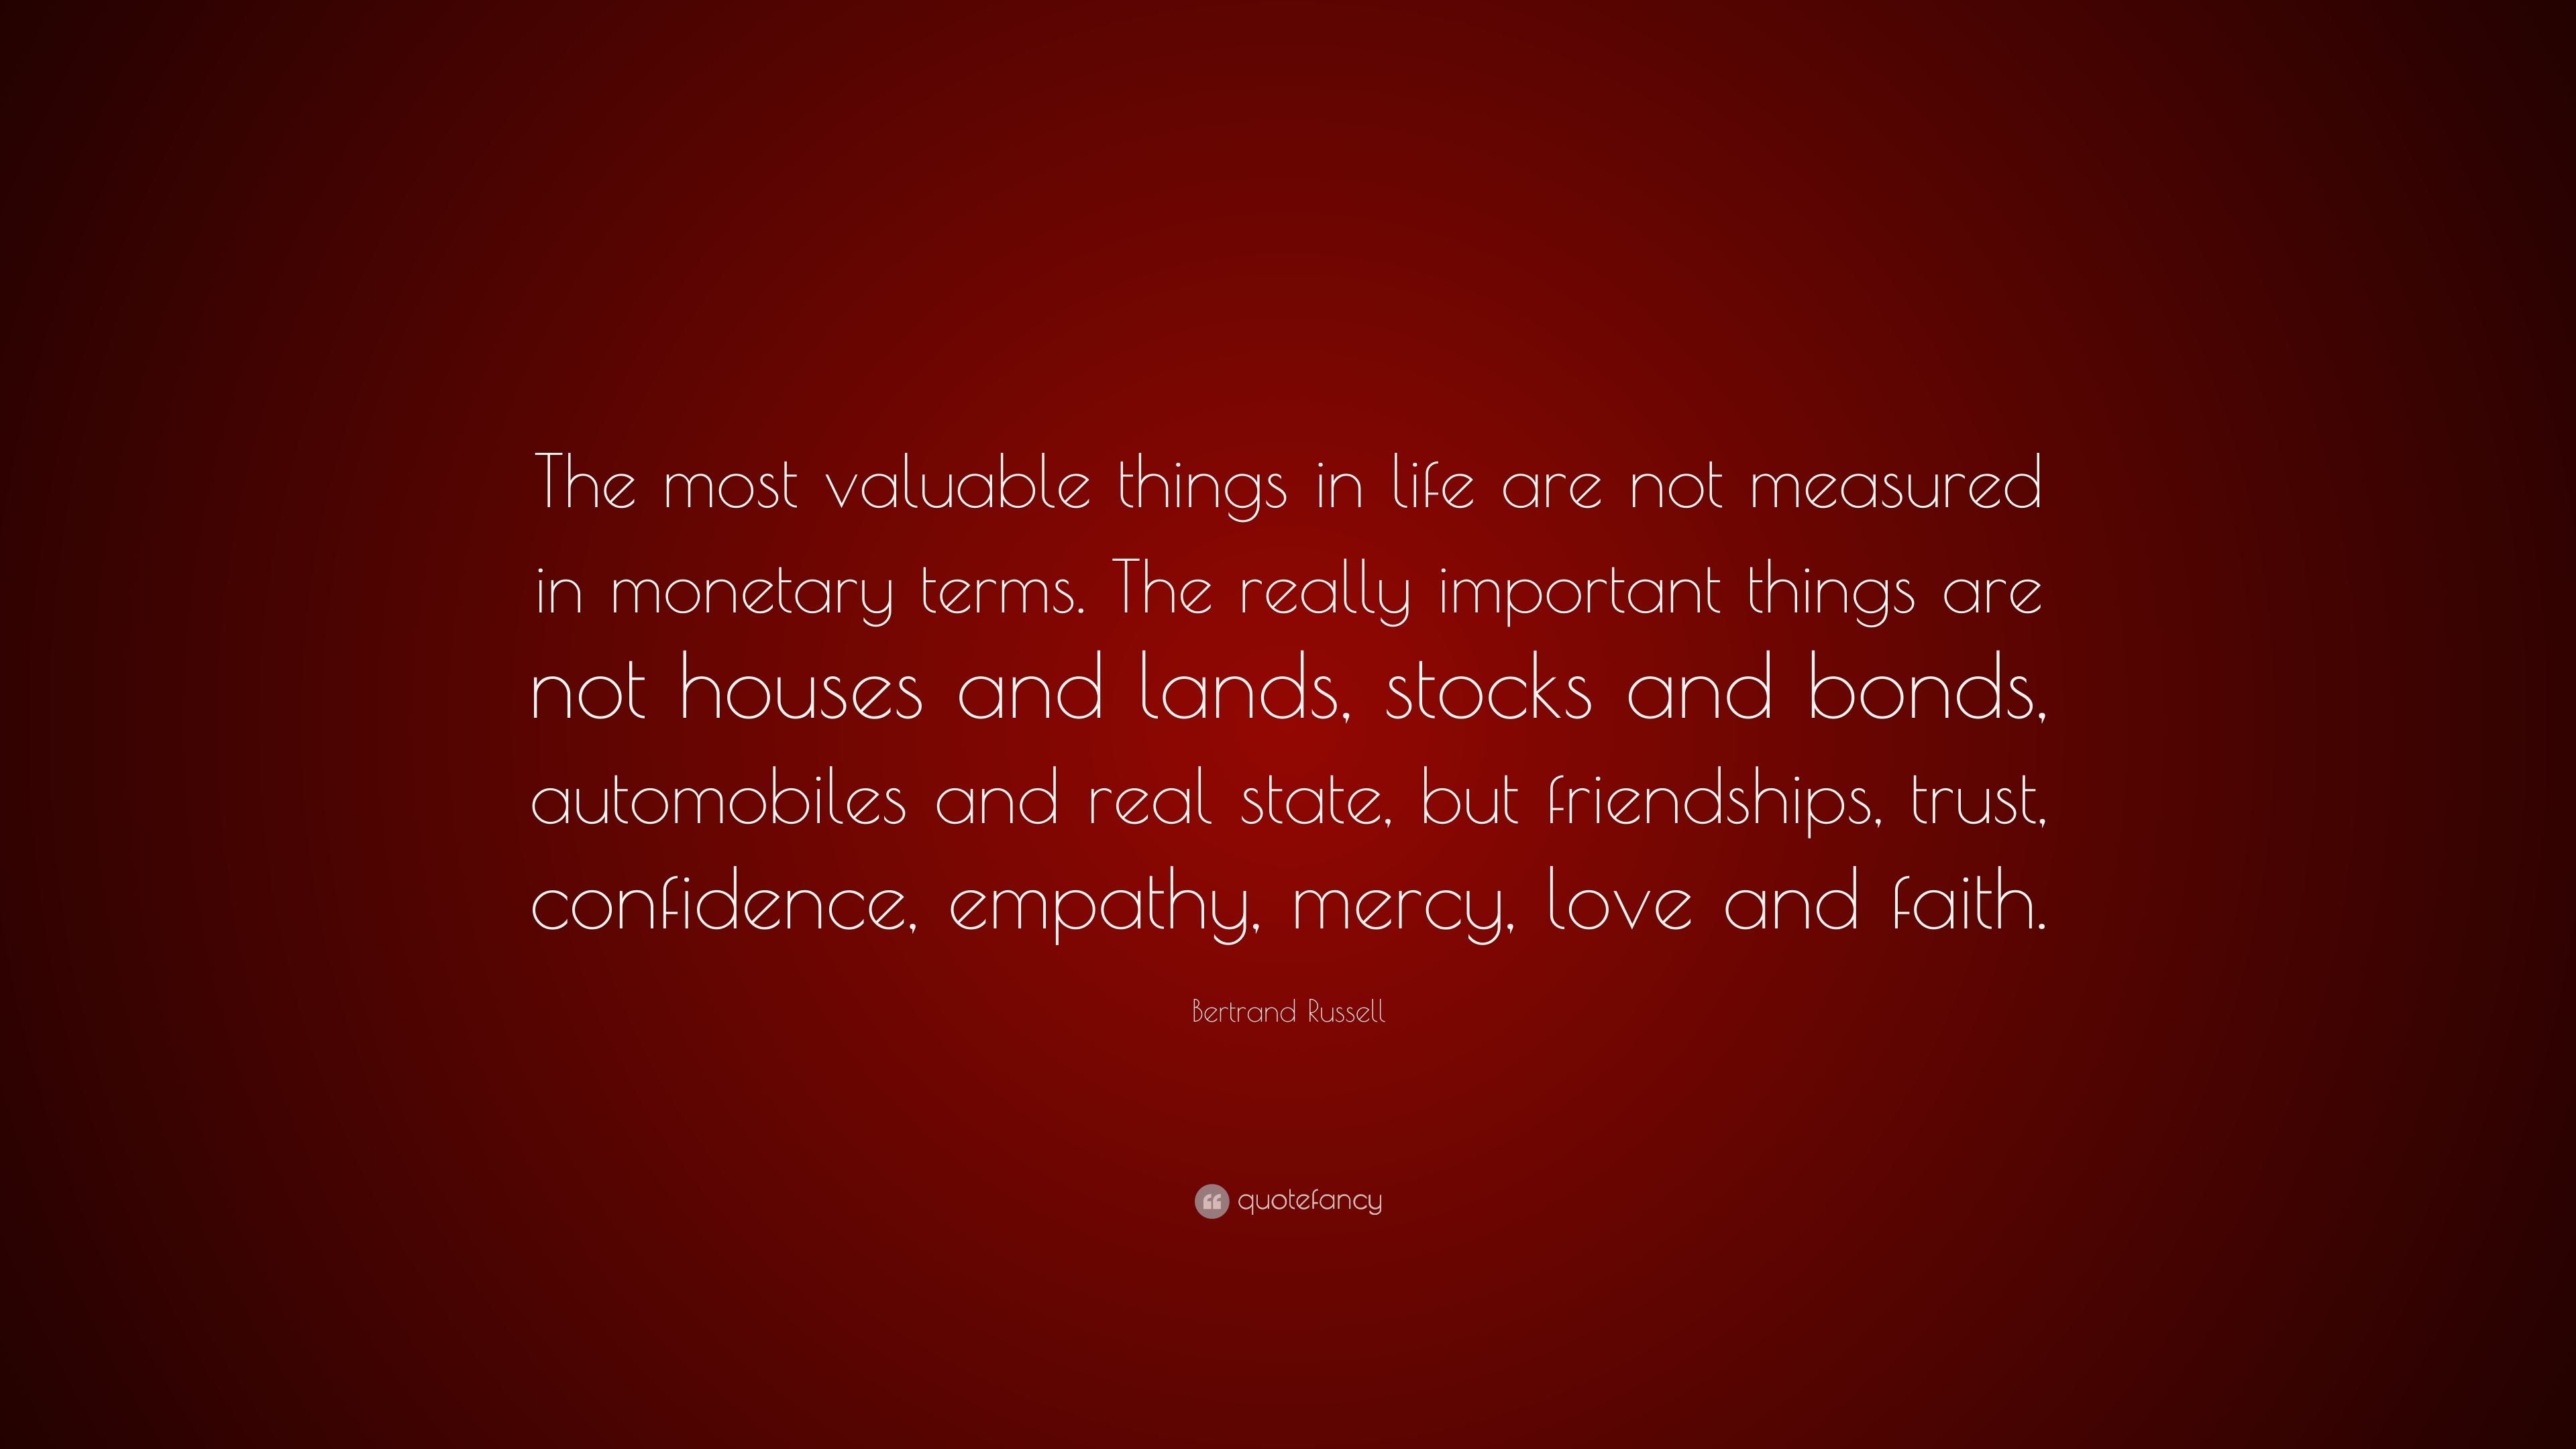 what is the most valuable thing in life